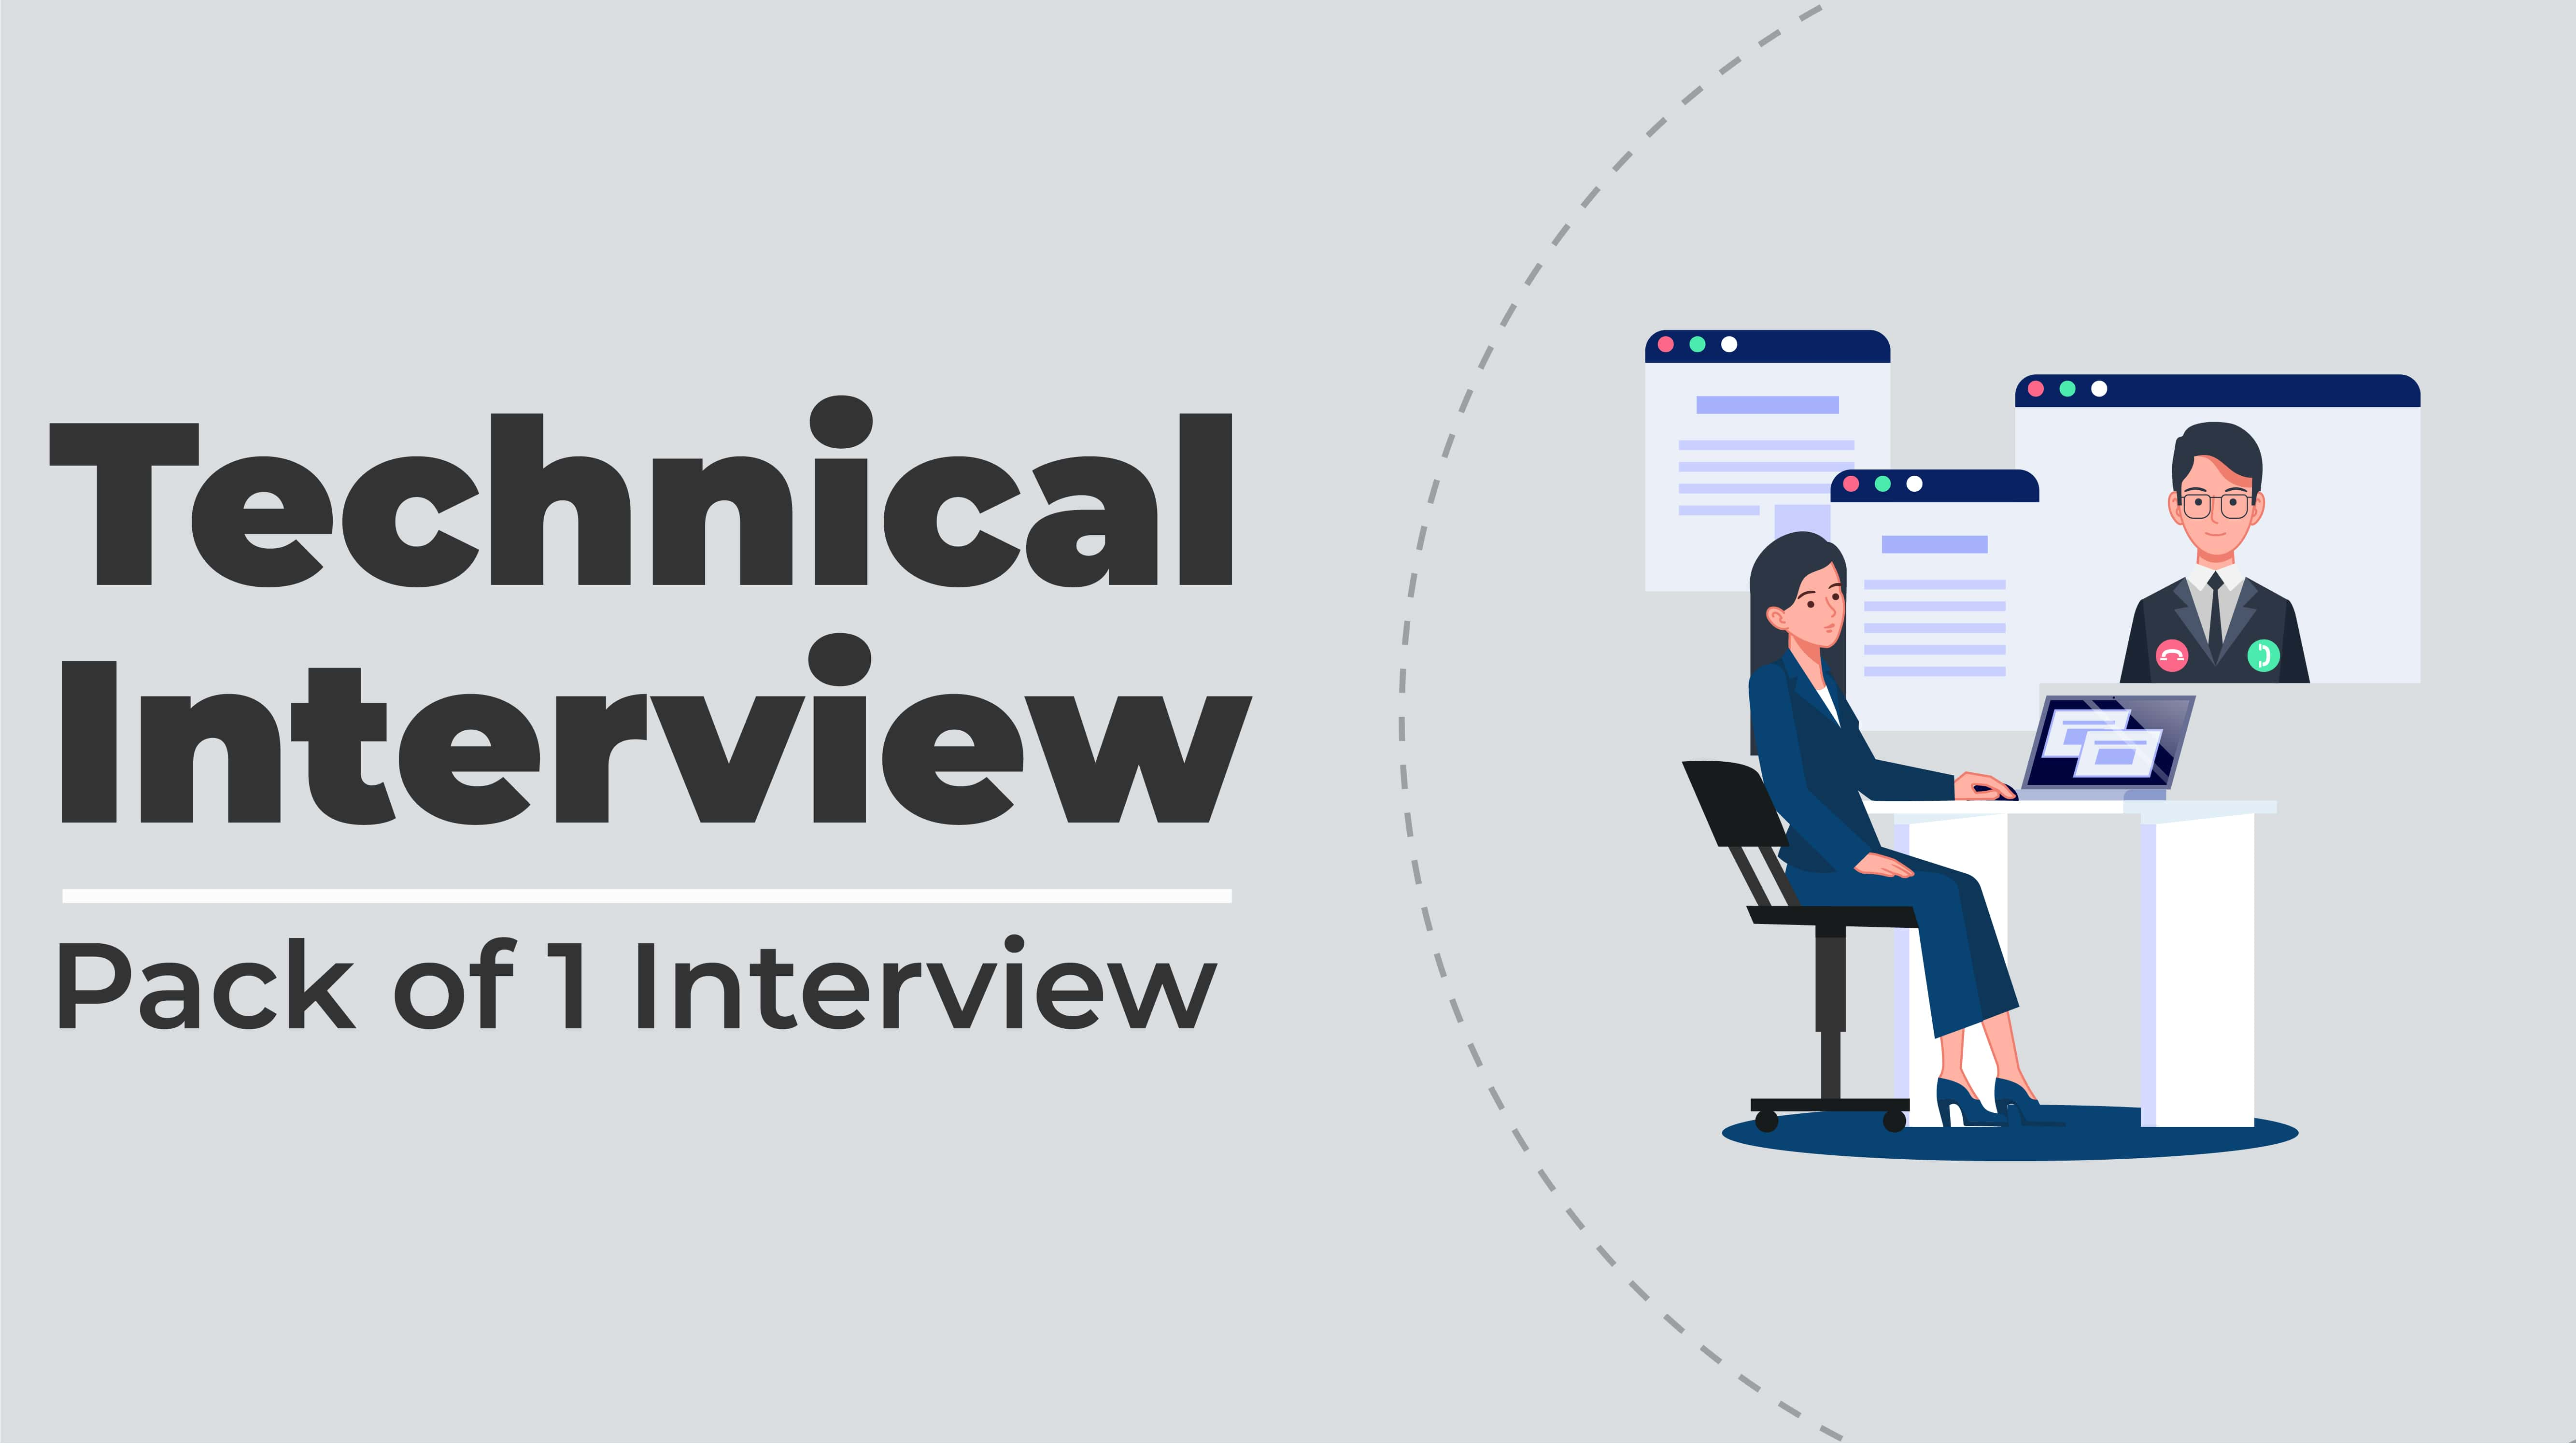 Technical Interview (Pack of 1 Interview)